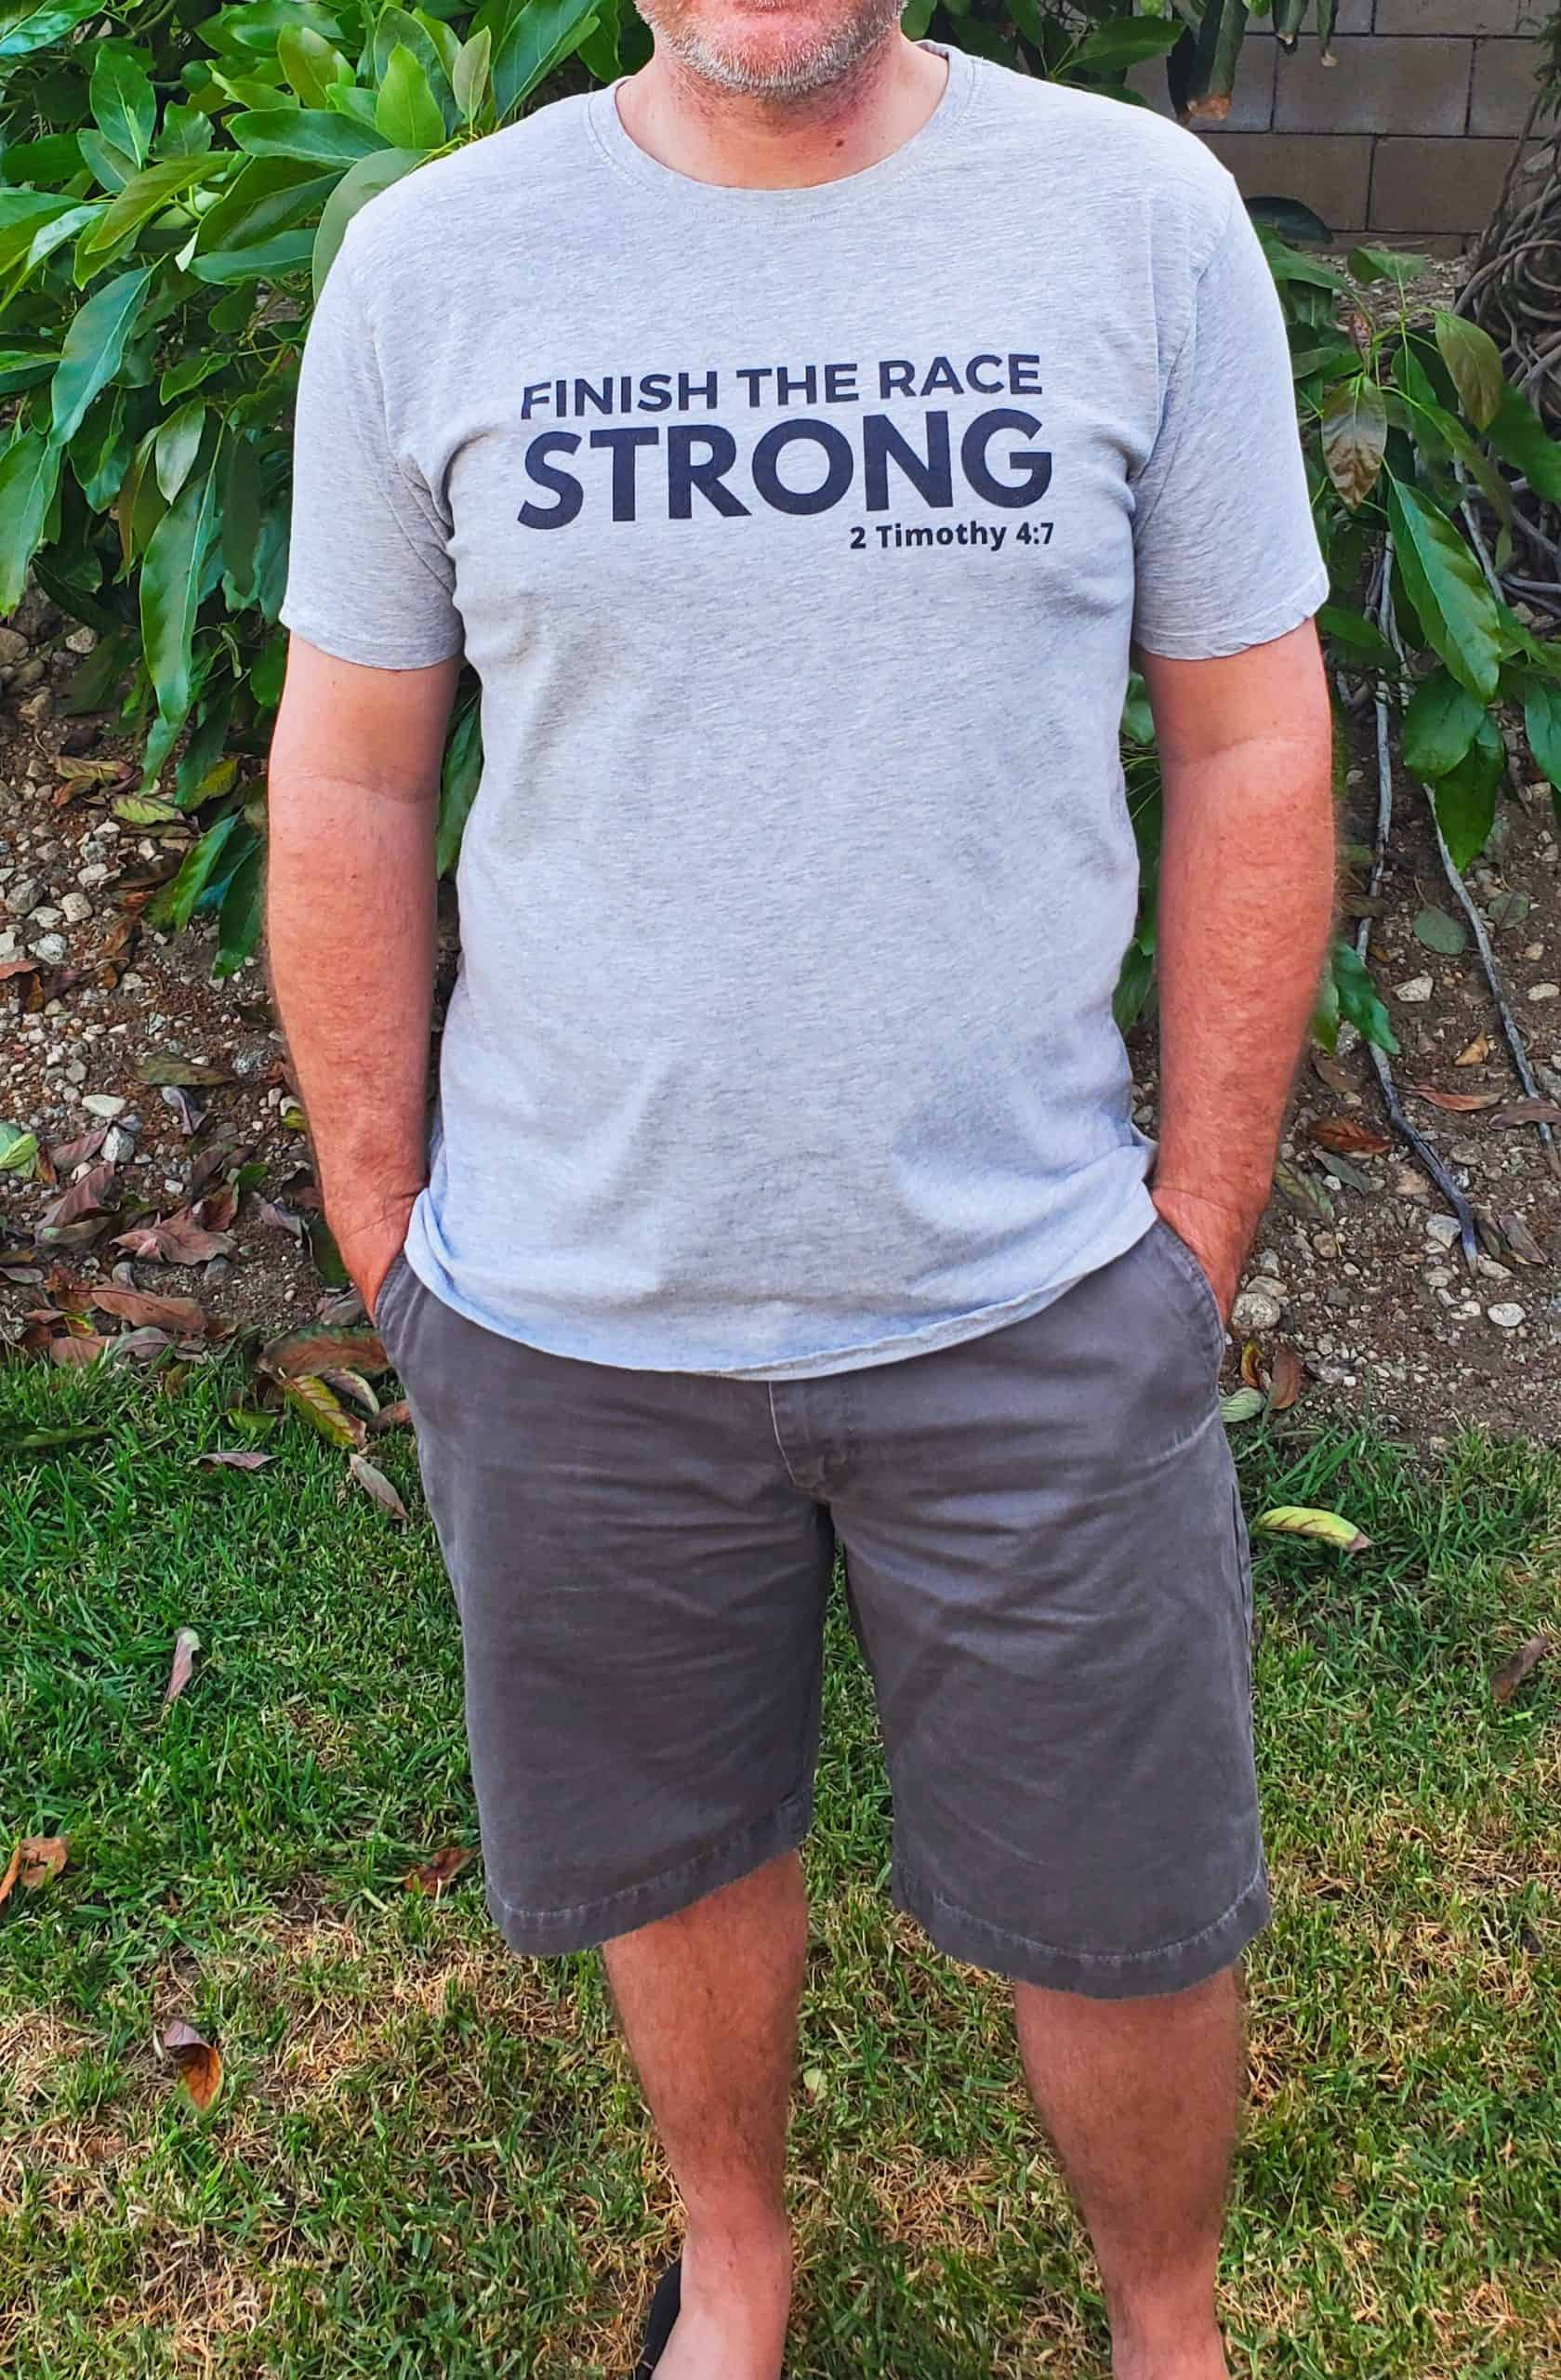 Finish the race strong Christian shirts for men